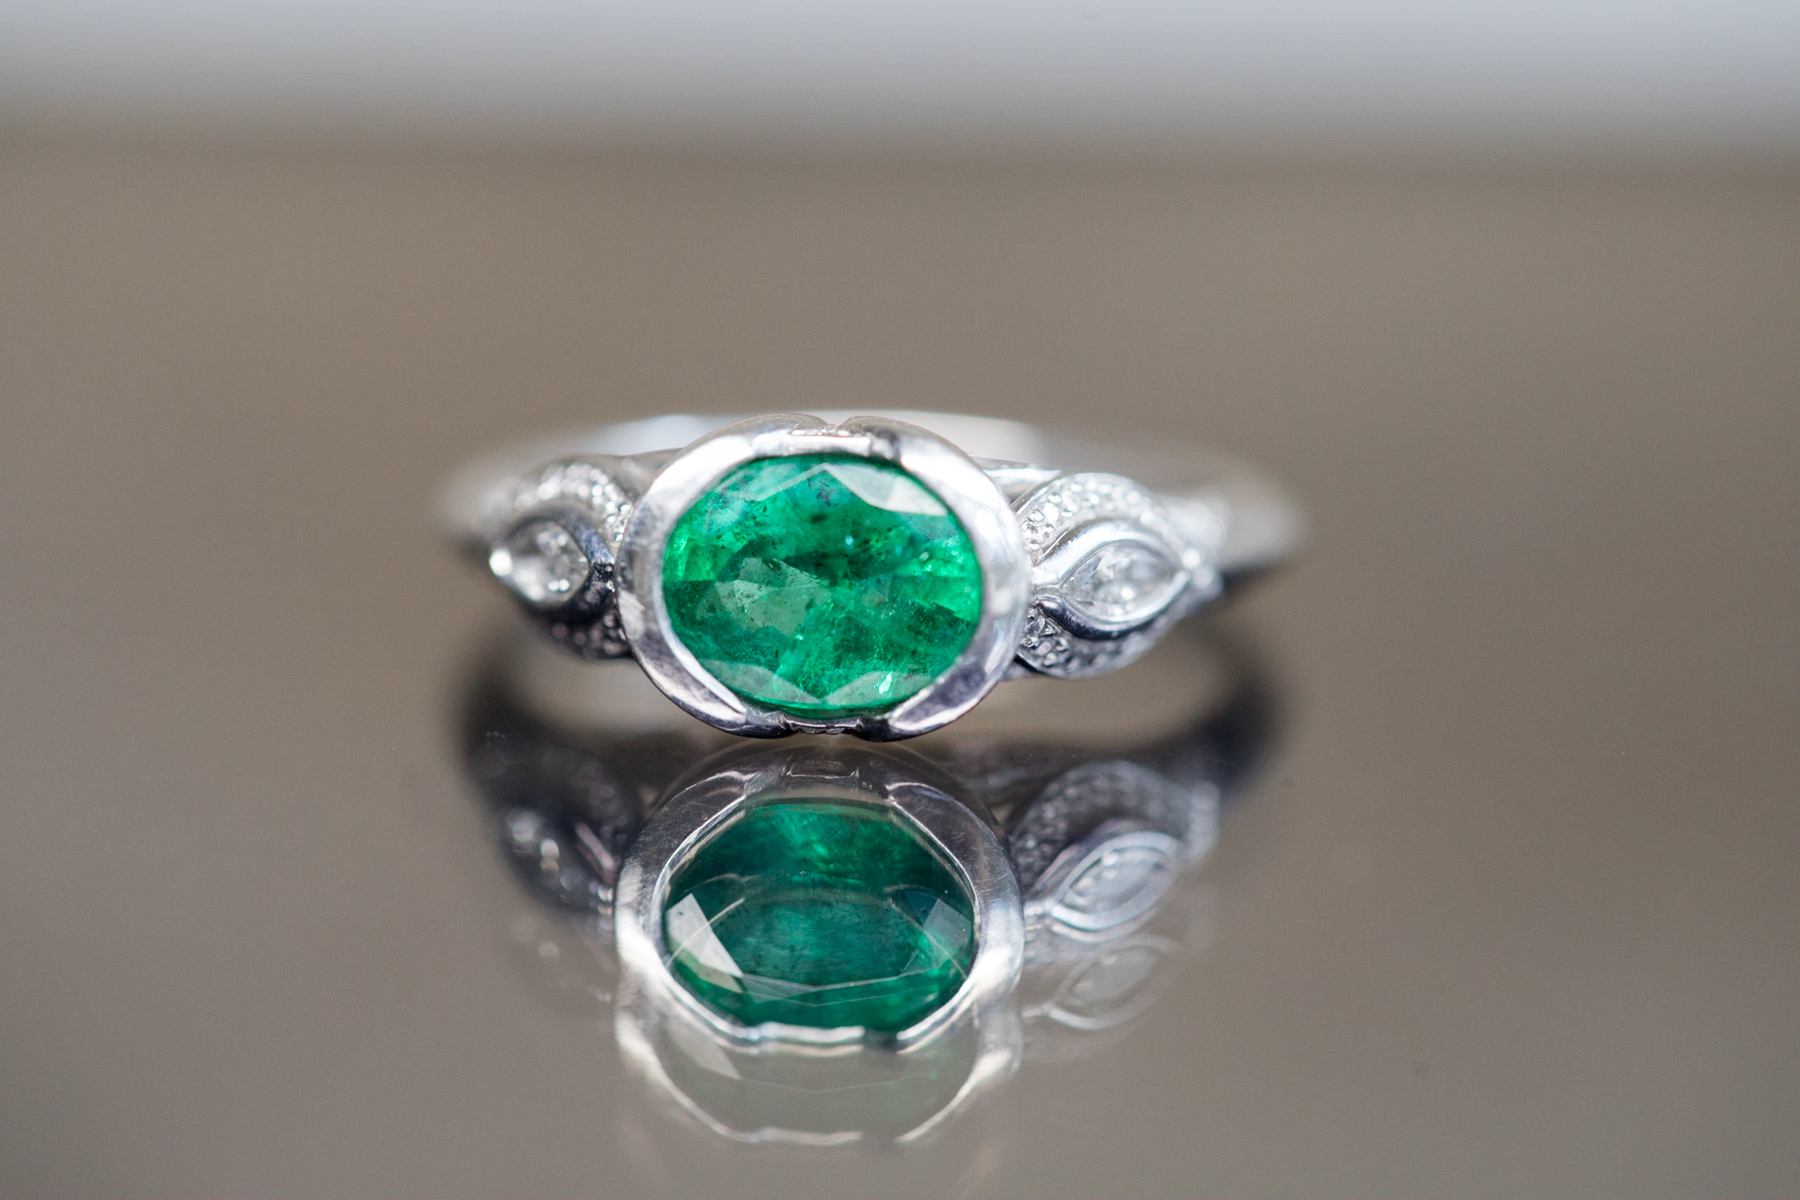 emerald-green-engagement-ring.jpg